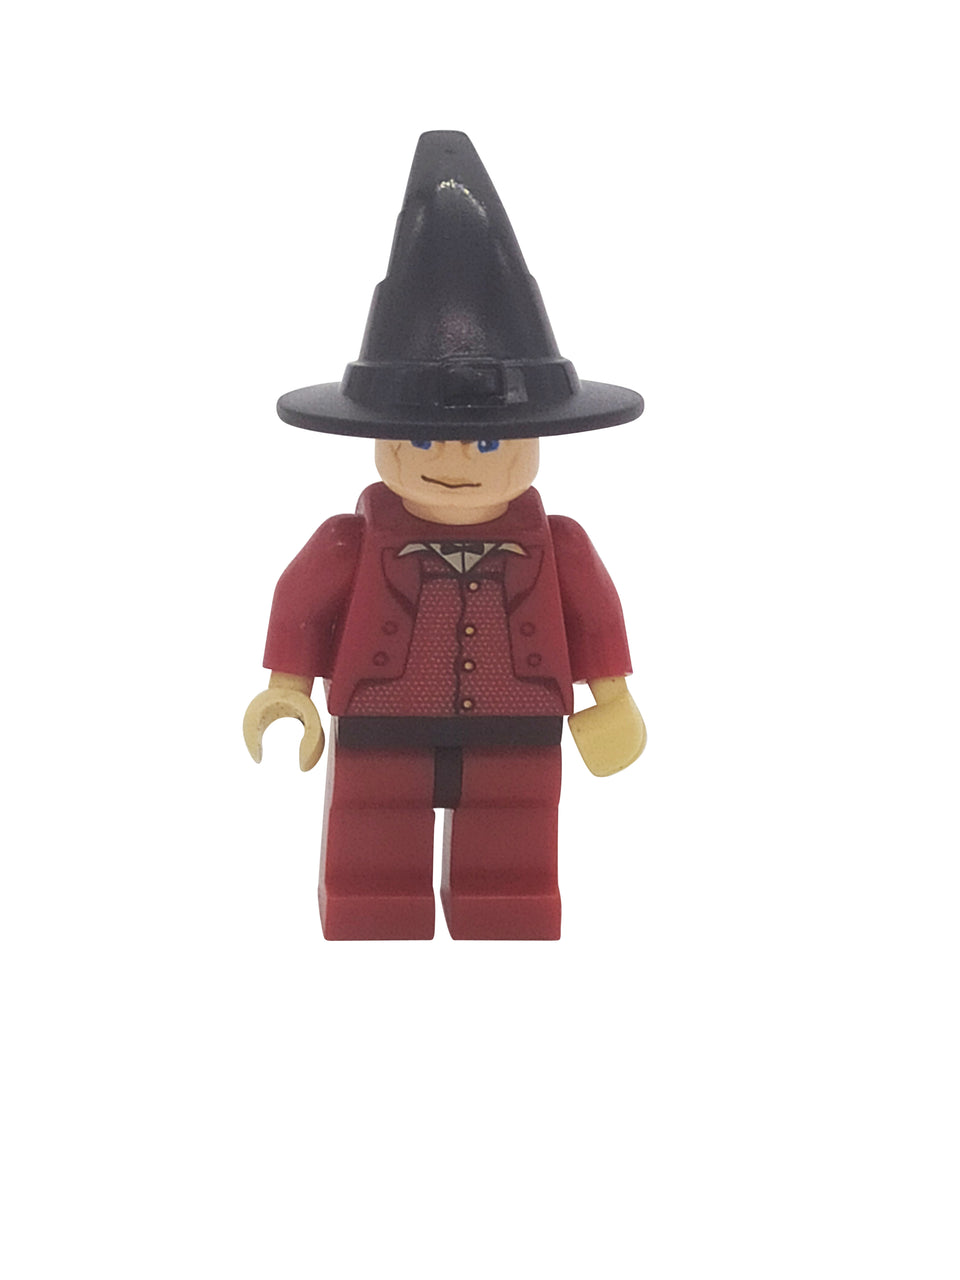 Businessman figure with a wizard's hat - Lego